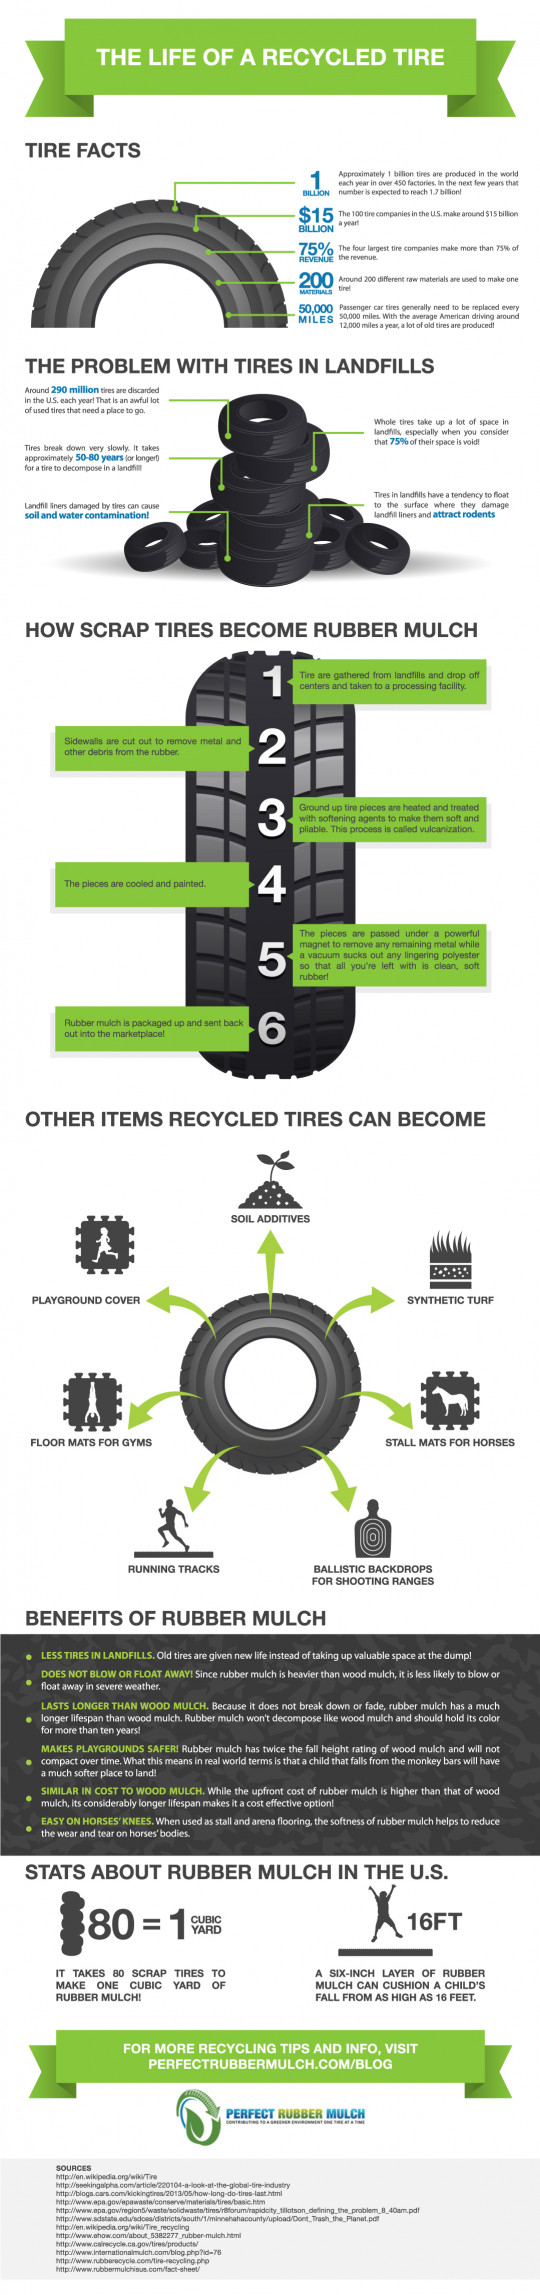 Recycling Used Tires!